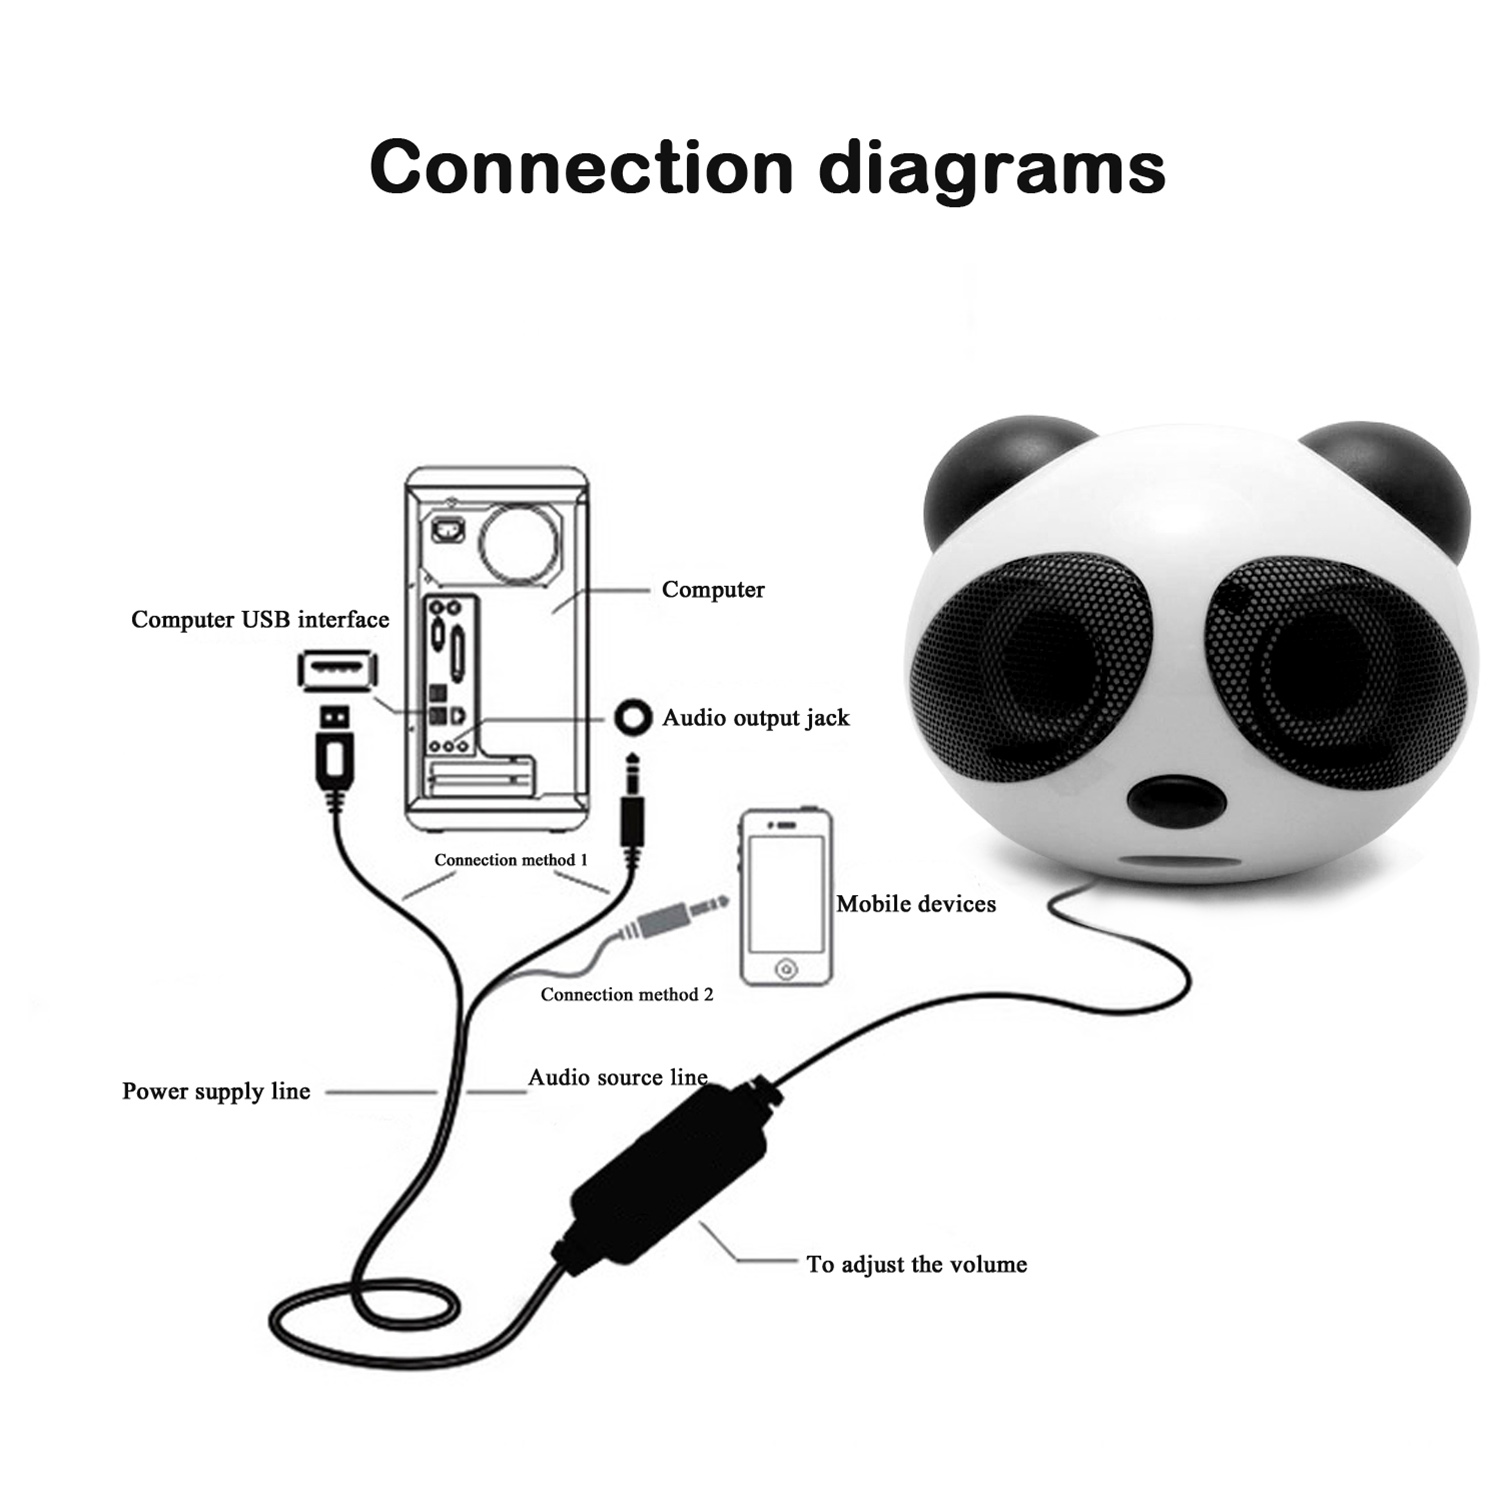 Cute Cartoon Mini Subwoofer Stereo Panda Usb Speaker Pc Computer Power Supply Diagram Speakers Loudspeaker Voice Box For Smart Phone Laptop Notebook In Portable From